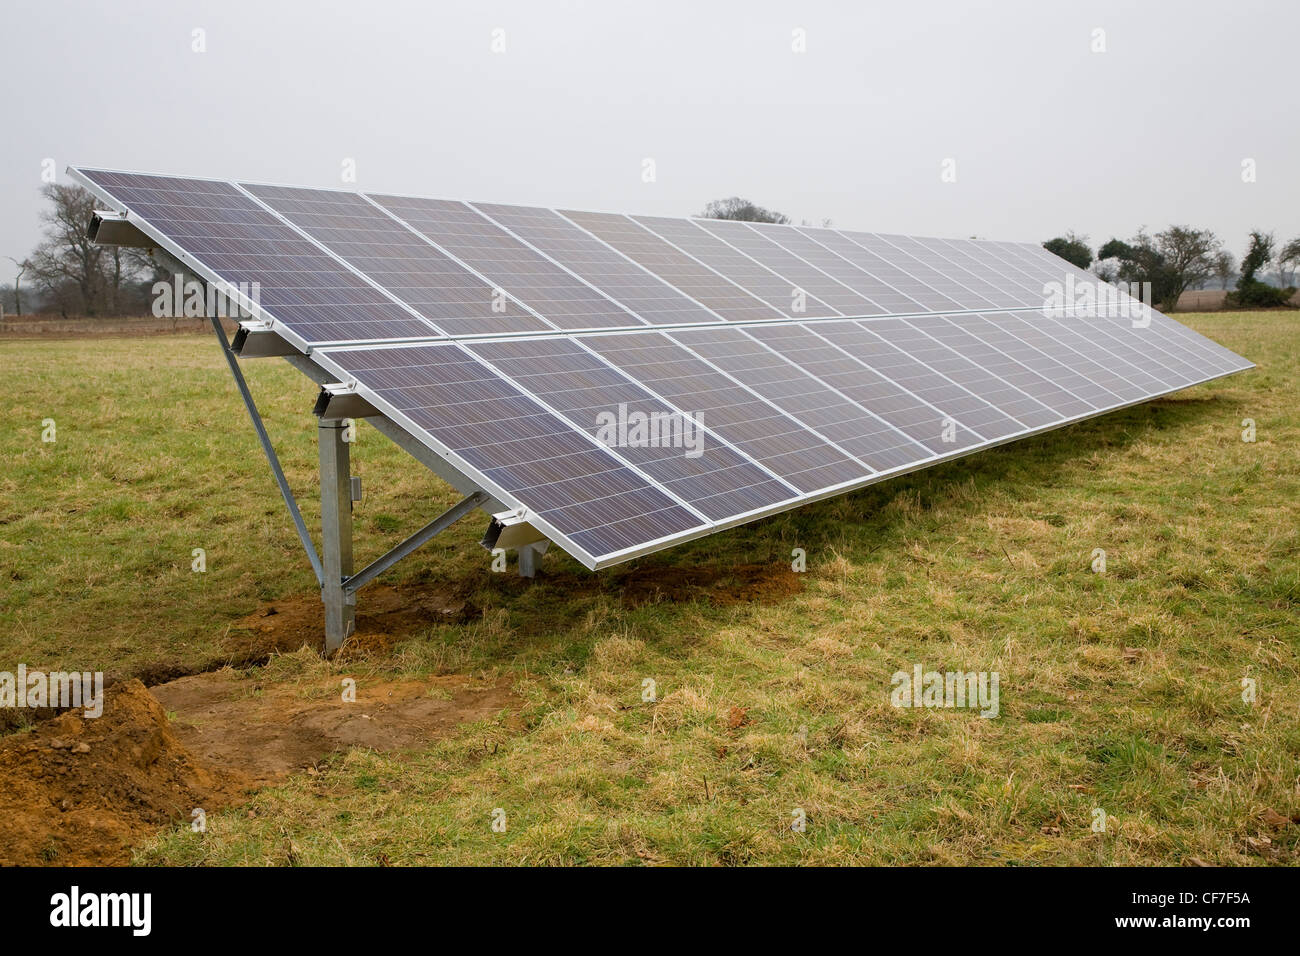 Array of photovoltaic panels stands in field - Stock Image